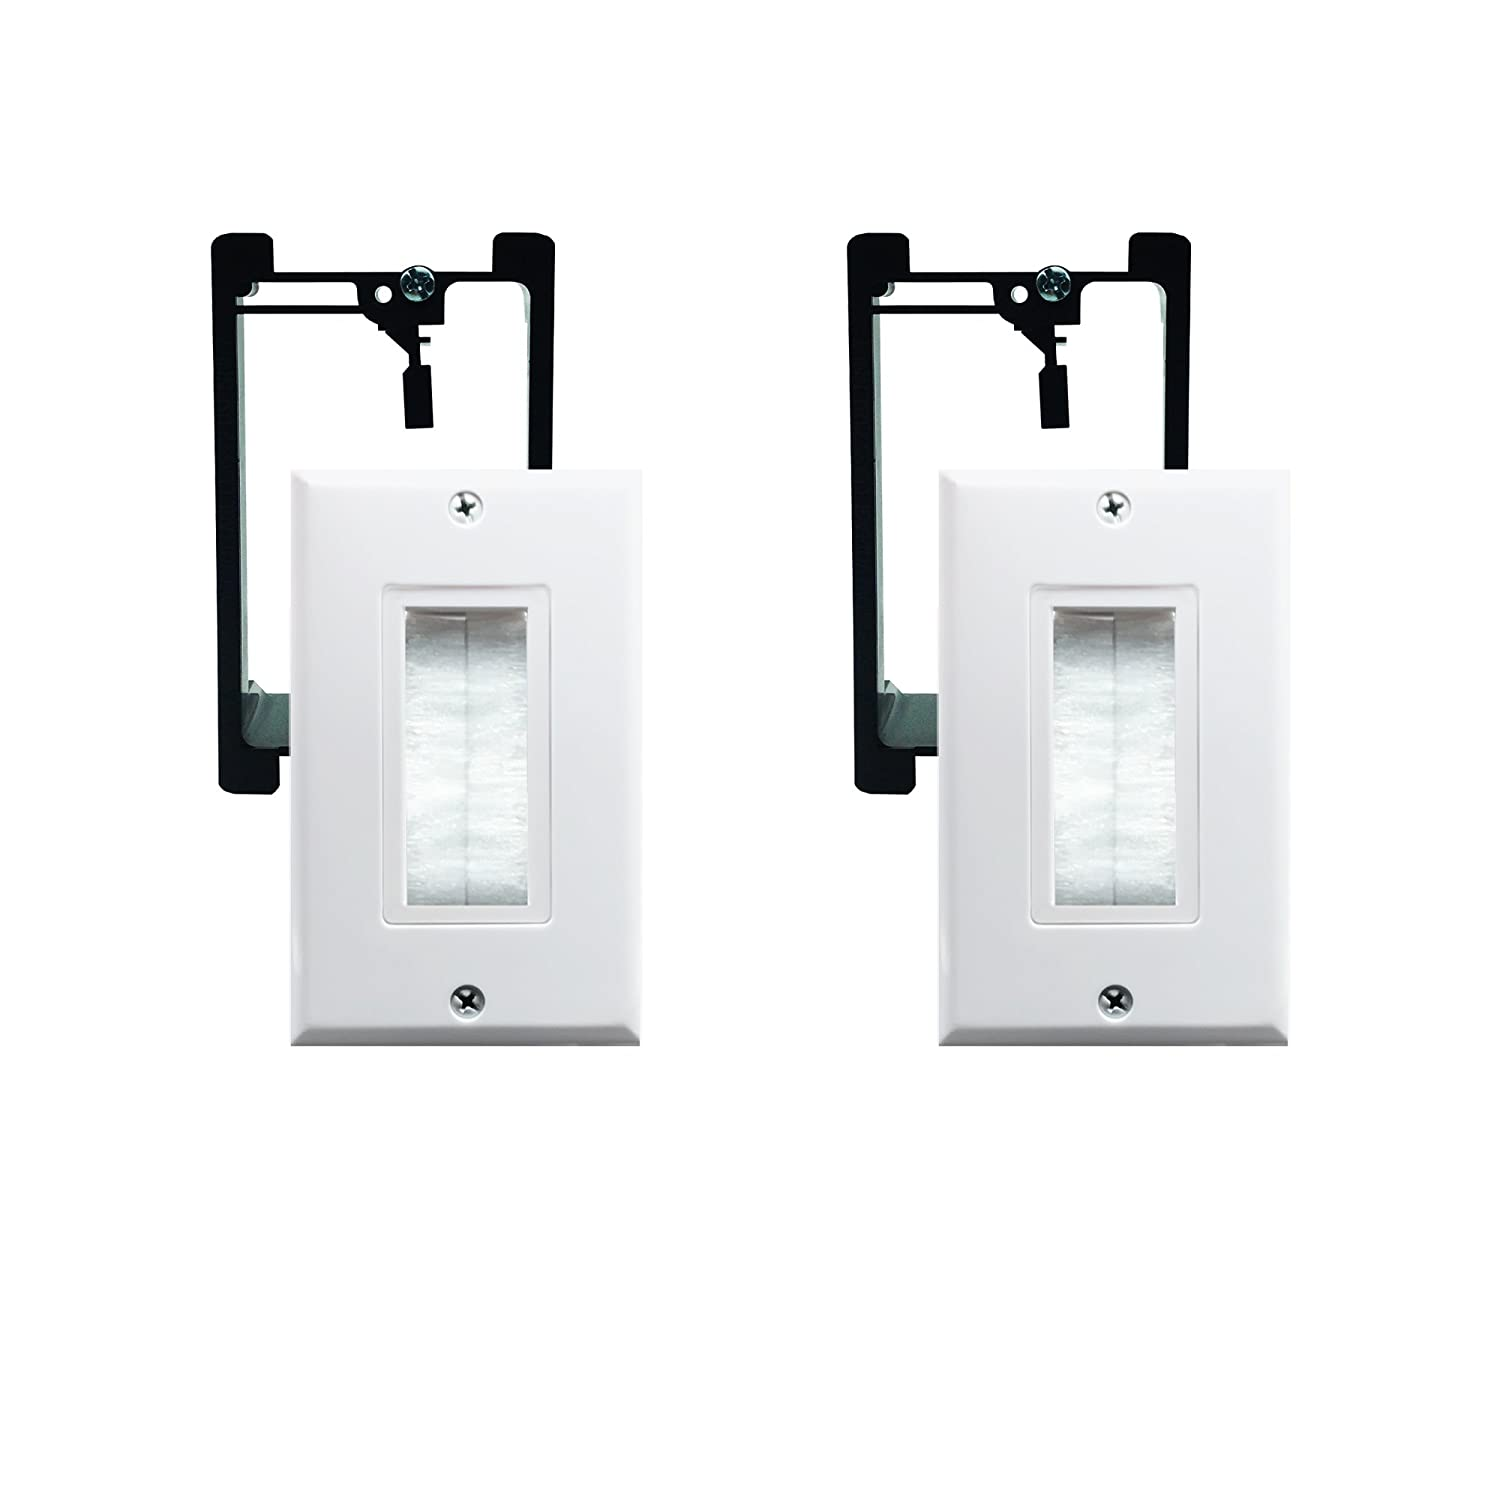 Brush Wall Plate with Single Gang Low Voltage Mounting Bracket,Yomyrayhu,Works Great with Audio/Vedio,HDMI,Home Theater(2 Pack)